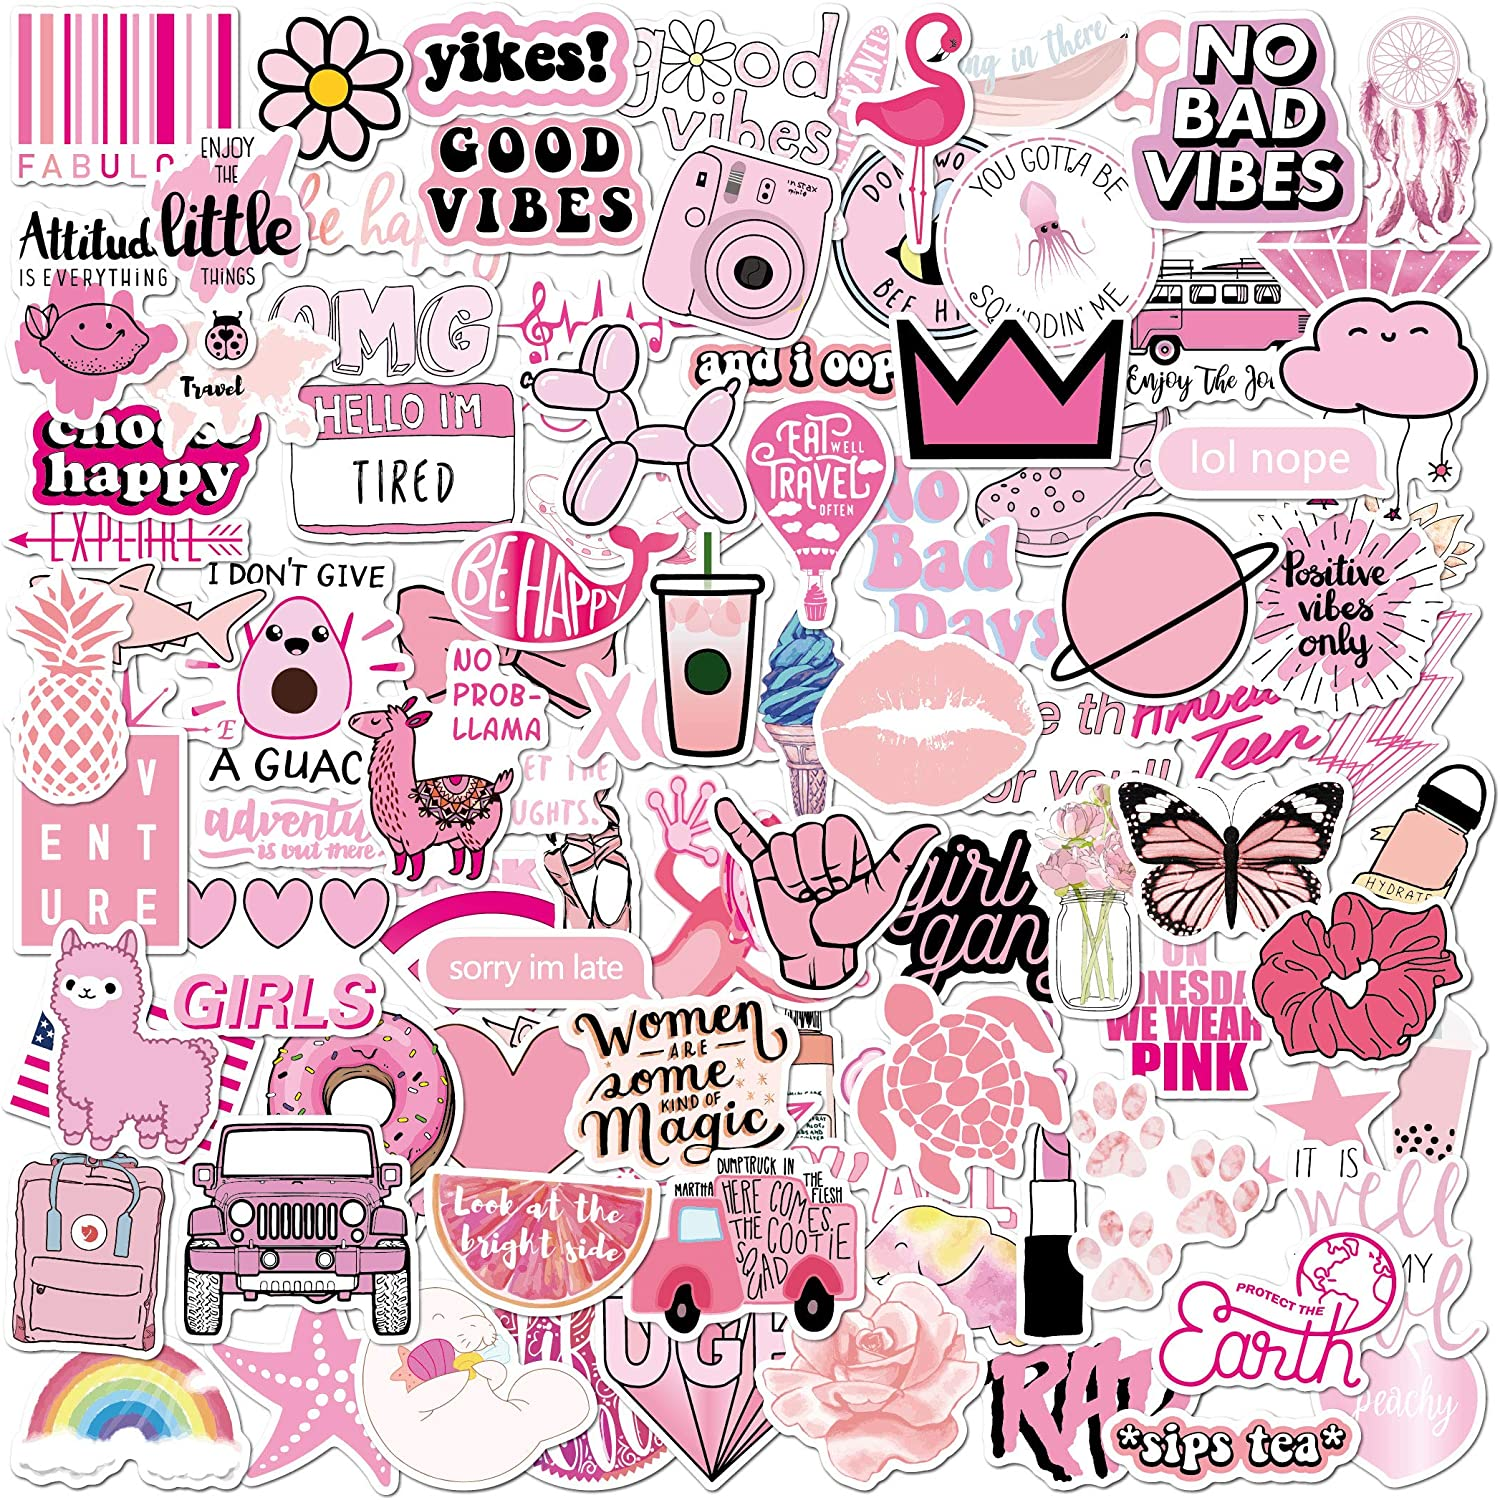 Pink Vsco Stickers 100 Pack I Cute Pink Stickers Waterproof 100% Vinyl Stickers I Vsco Girls Stuff, Aesthetic Stickers, Vsco Stickers for Water Bottle, Laptop Stickers (100 Pack, Pink VSCO Stickers)